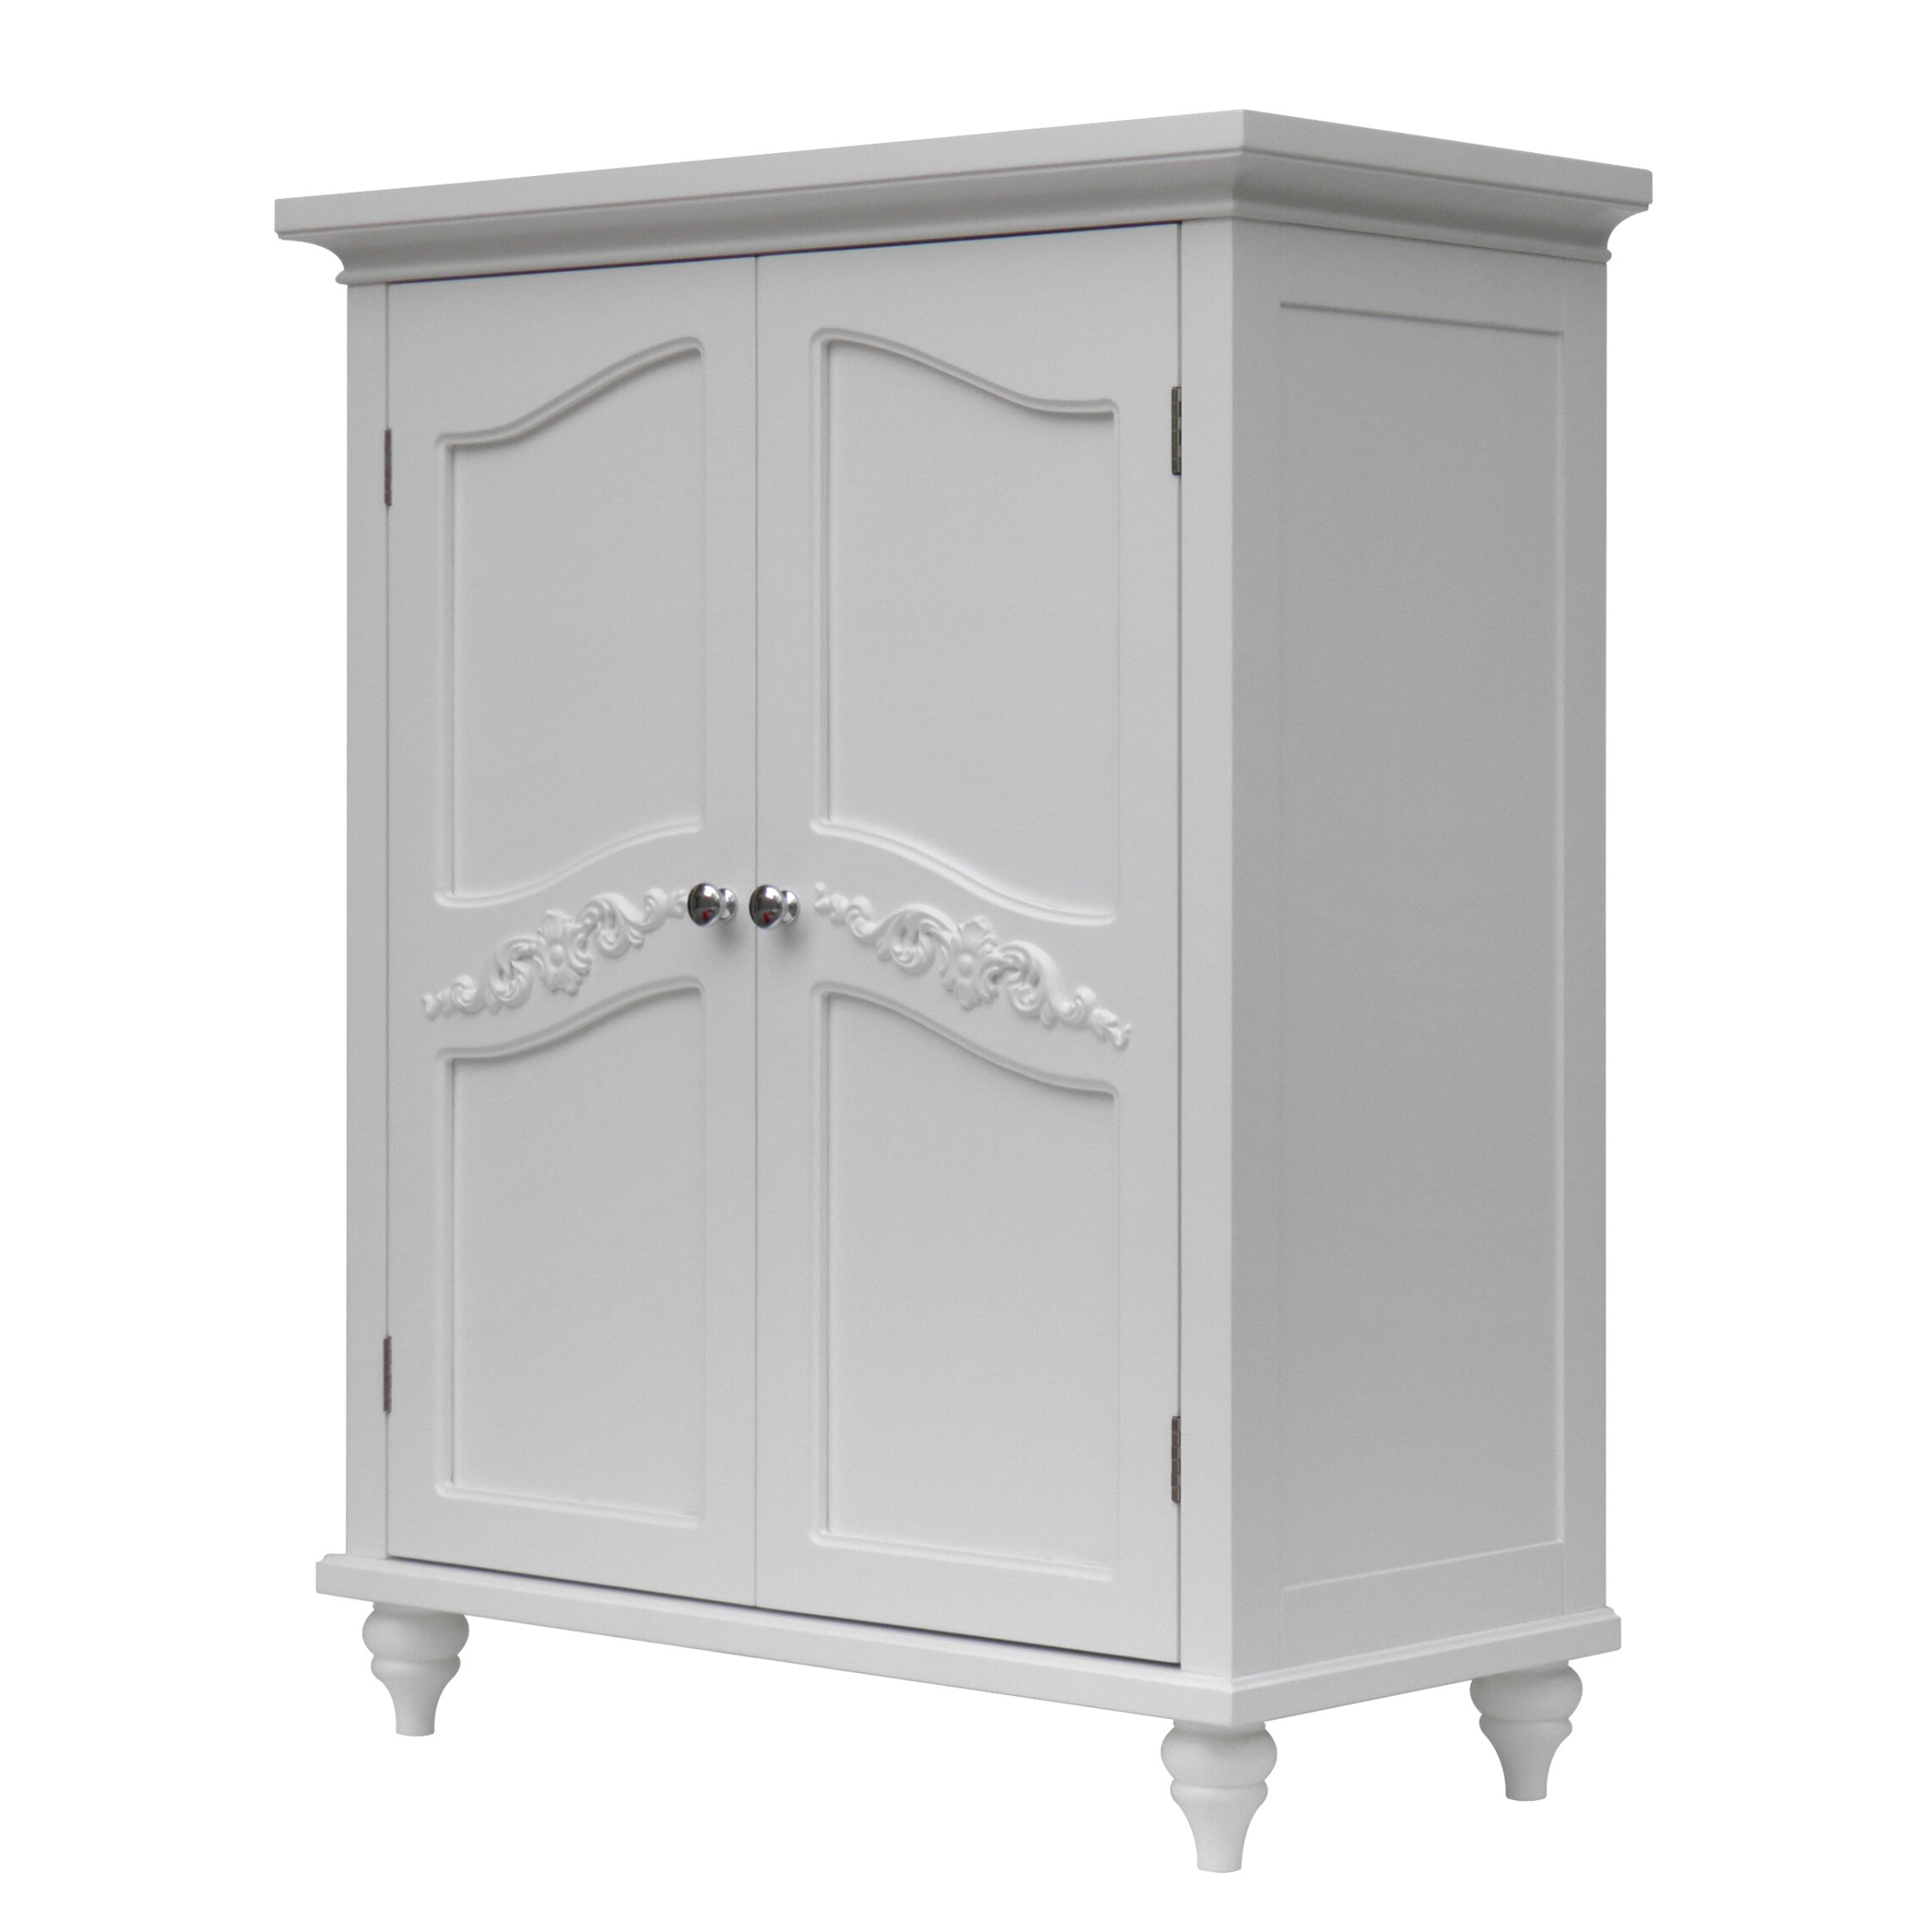 Elegant home fashions versailles 27 x 34 free standing for One day doors and closets reviews